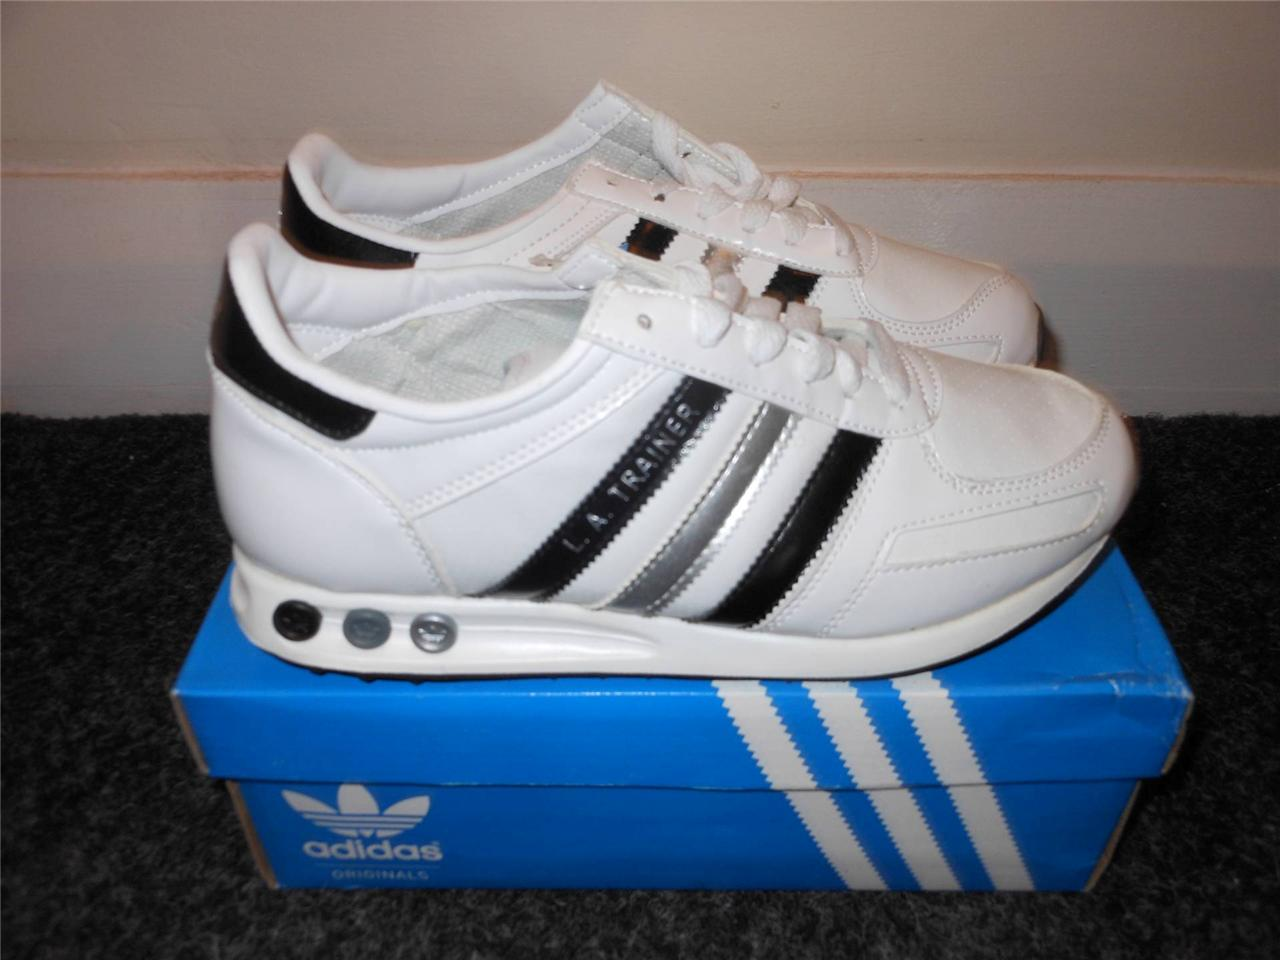 Mens-adidas-L-A-TRAINER-trainer-NEW-BOXED-various-sizes-IDEAL-GIFT-FREE-UK-PP